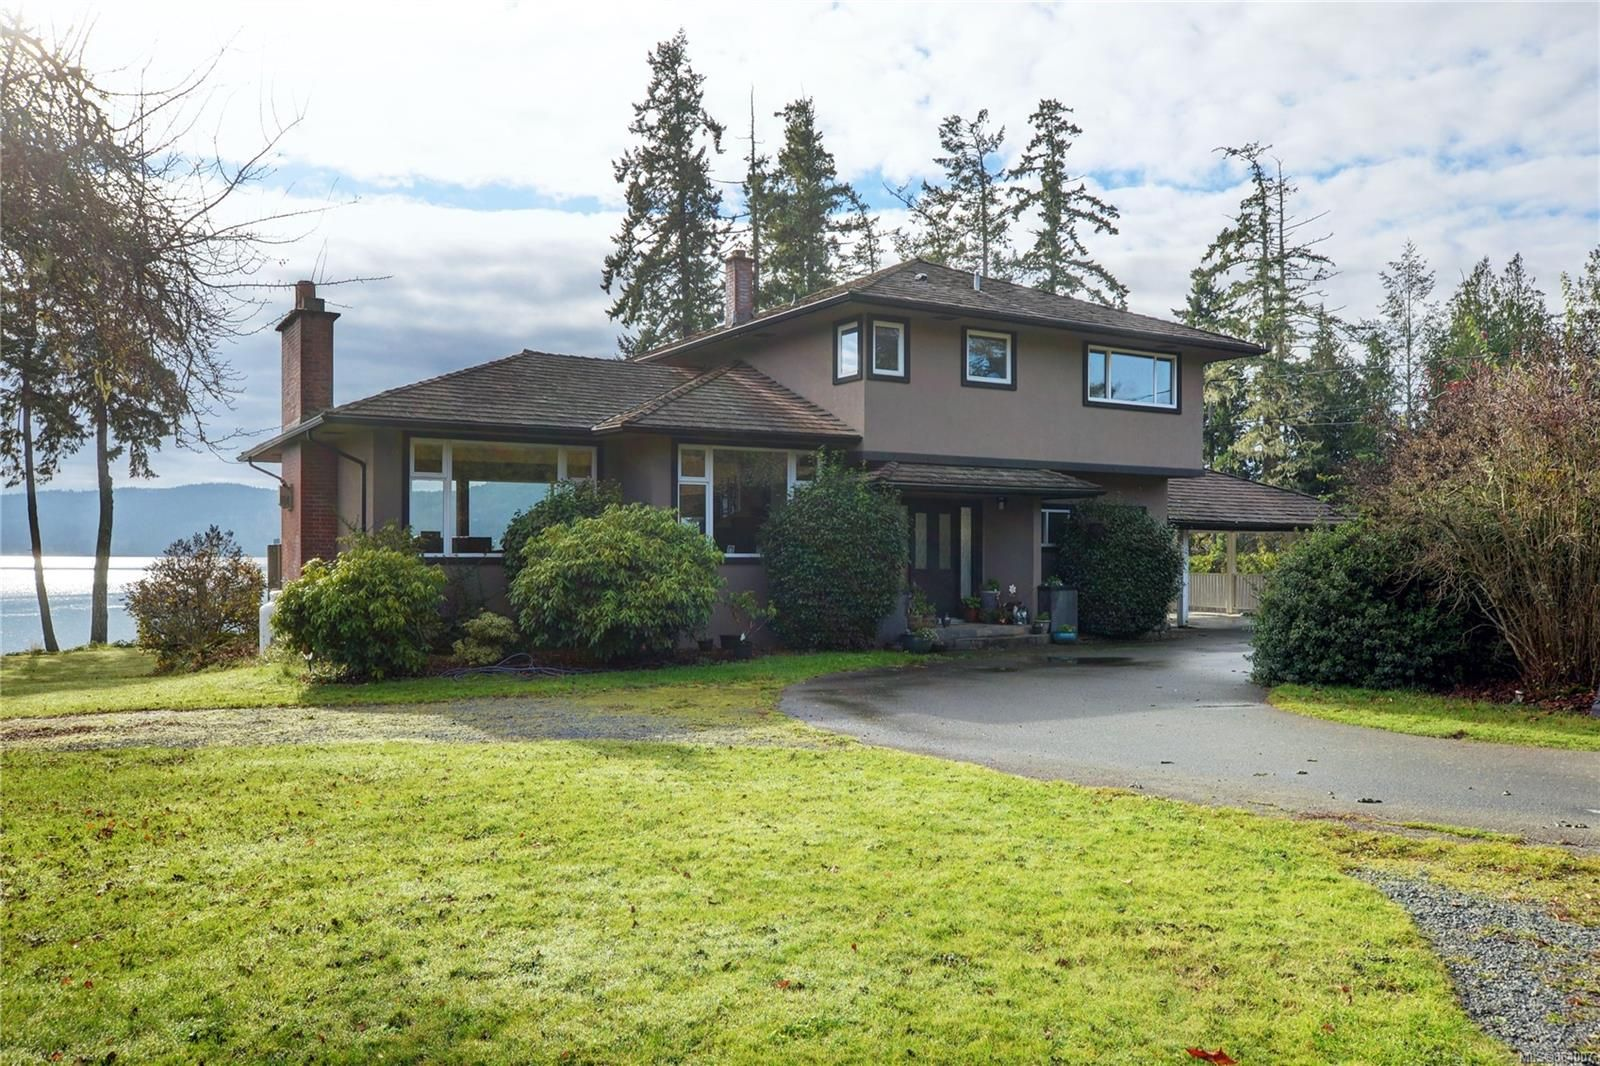 Main Photo: 5697 Sooke Rd in : Sk Saseenos House for sale (Sooke)  : MLS®# 864007